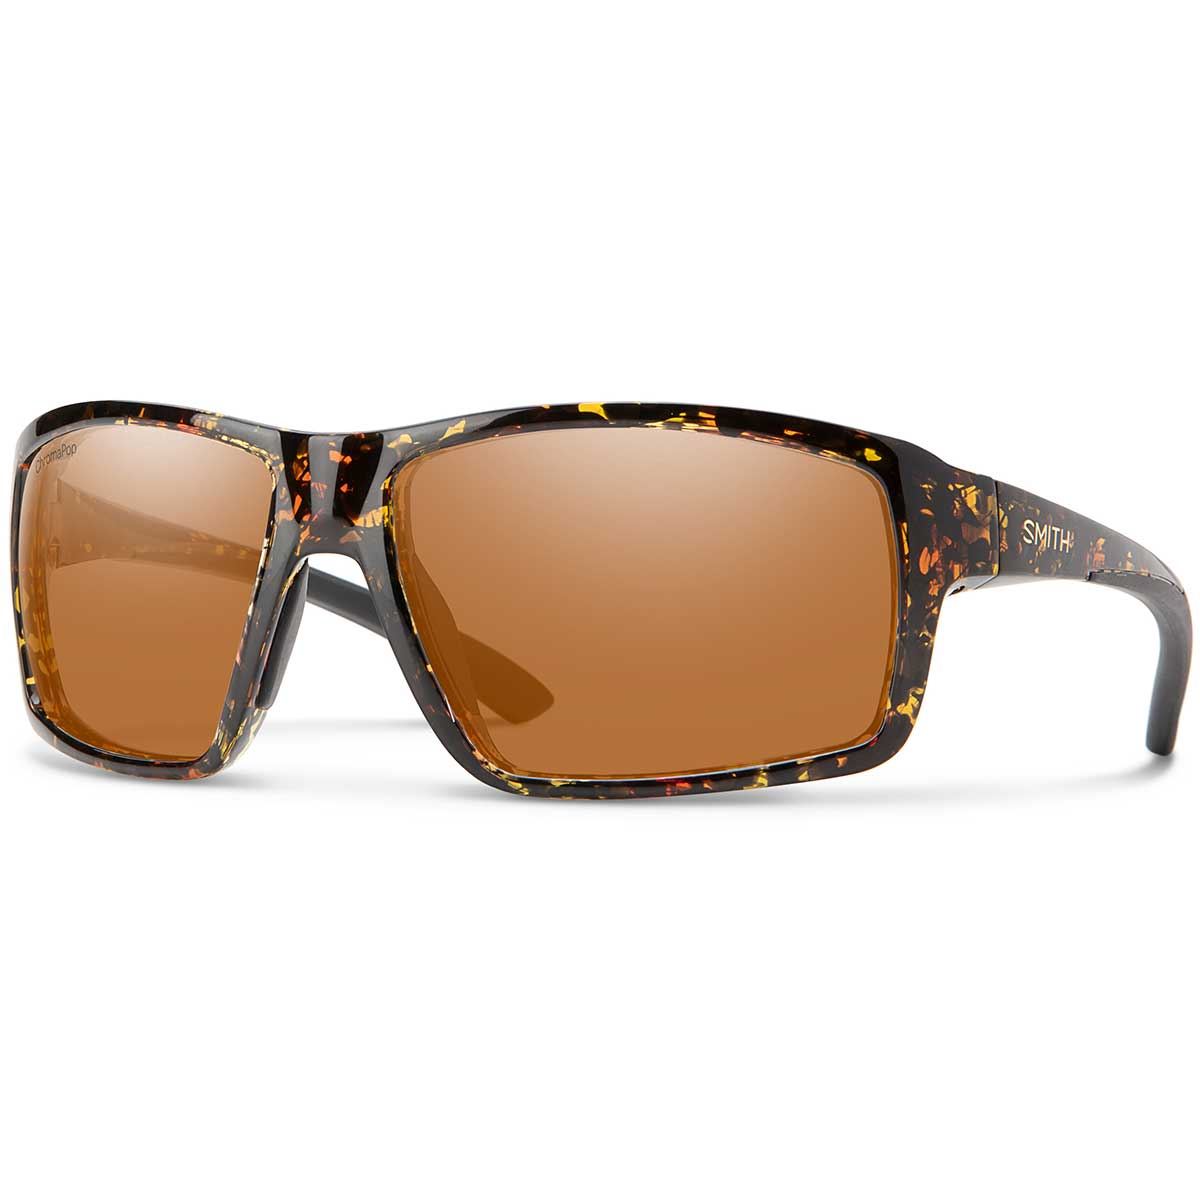 Smith Hookshot Sunglasses Polarized Chromapop in Dark Amber Tortoise with Copper main view